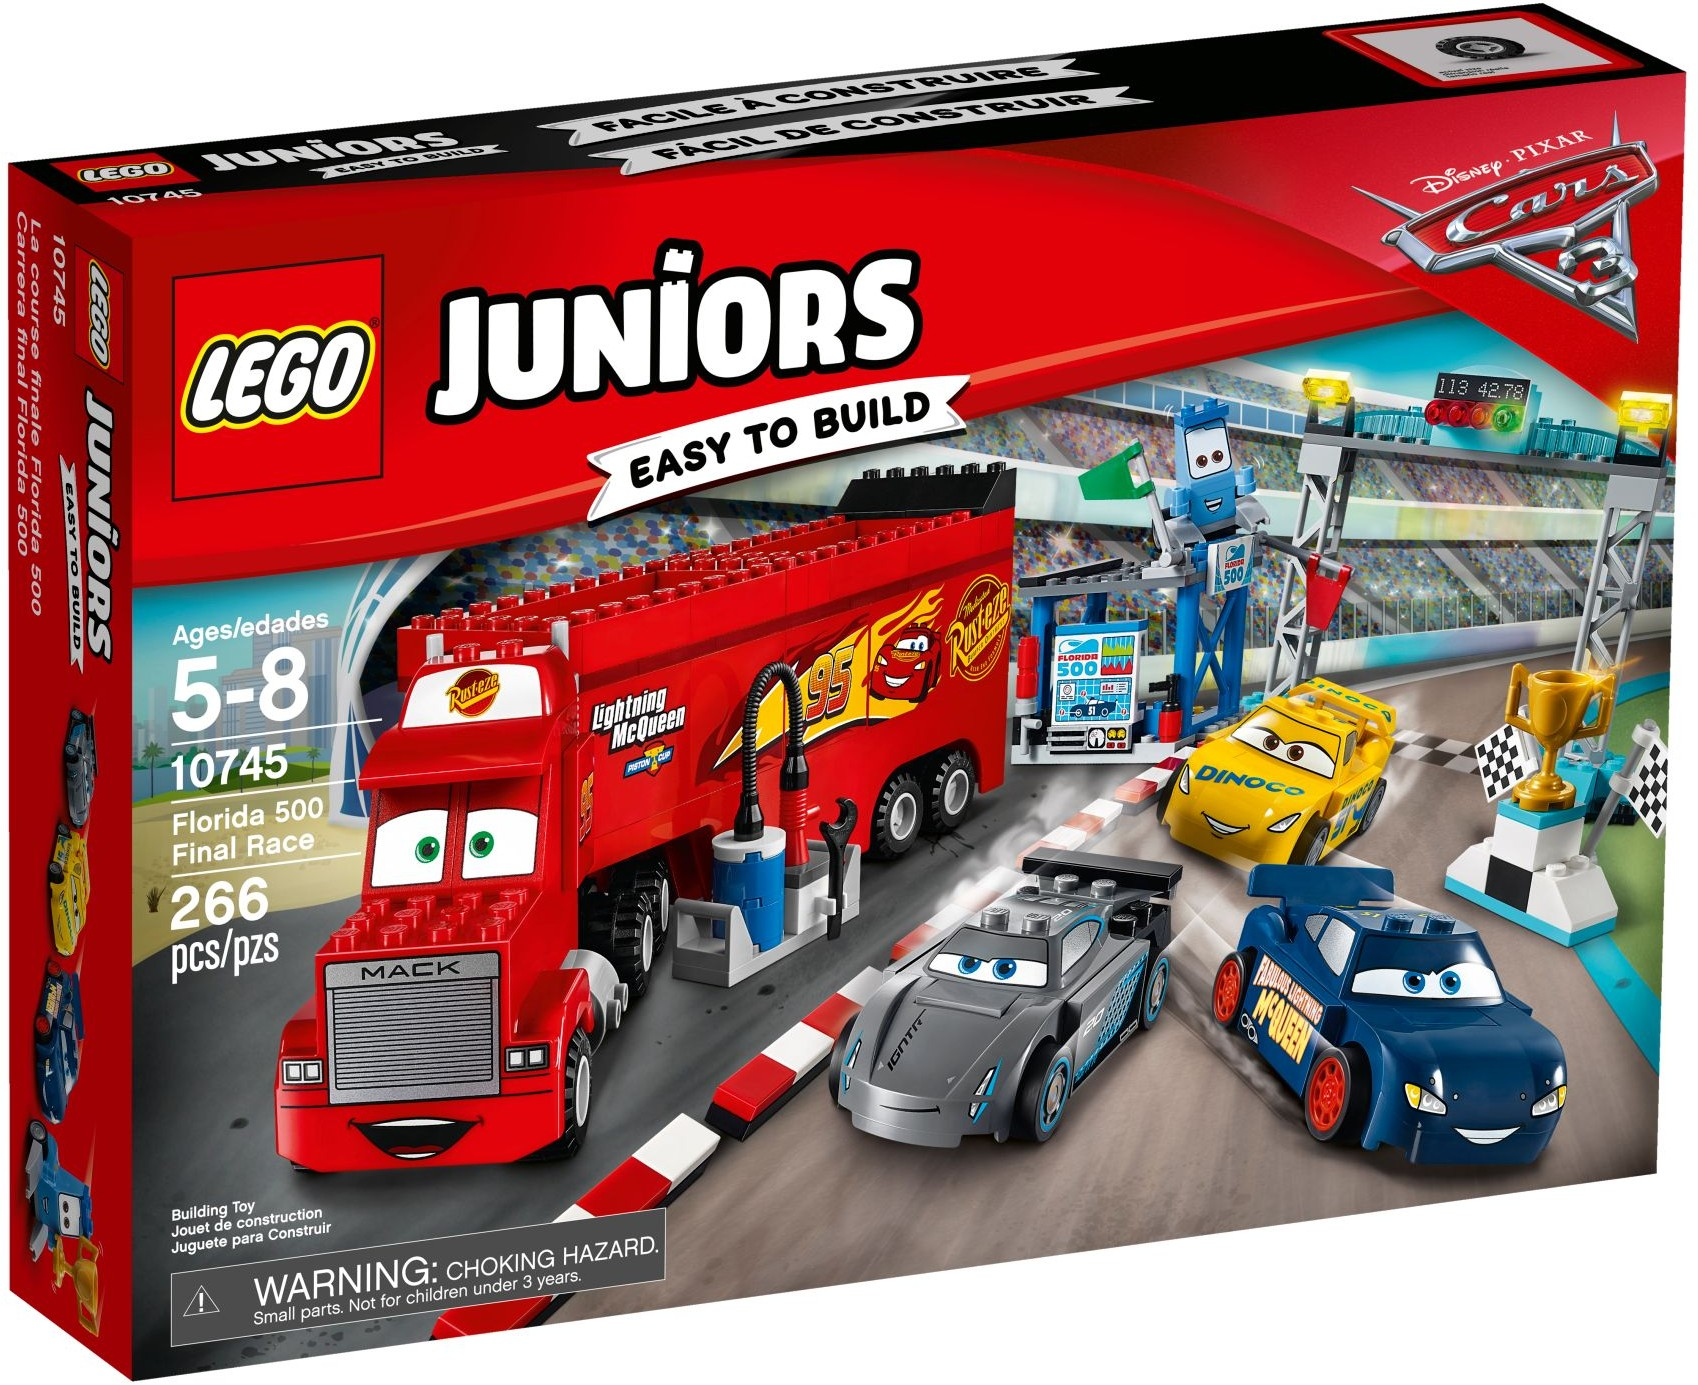 10745 LEGO Juniors  Florida 500 Final Race